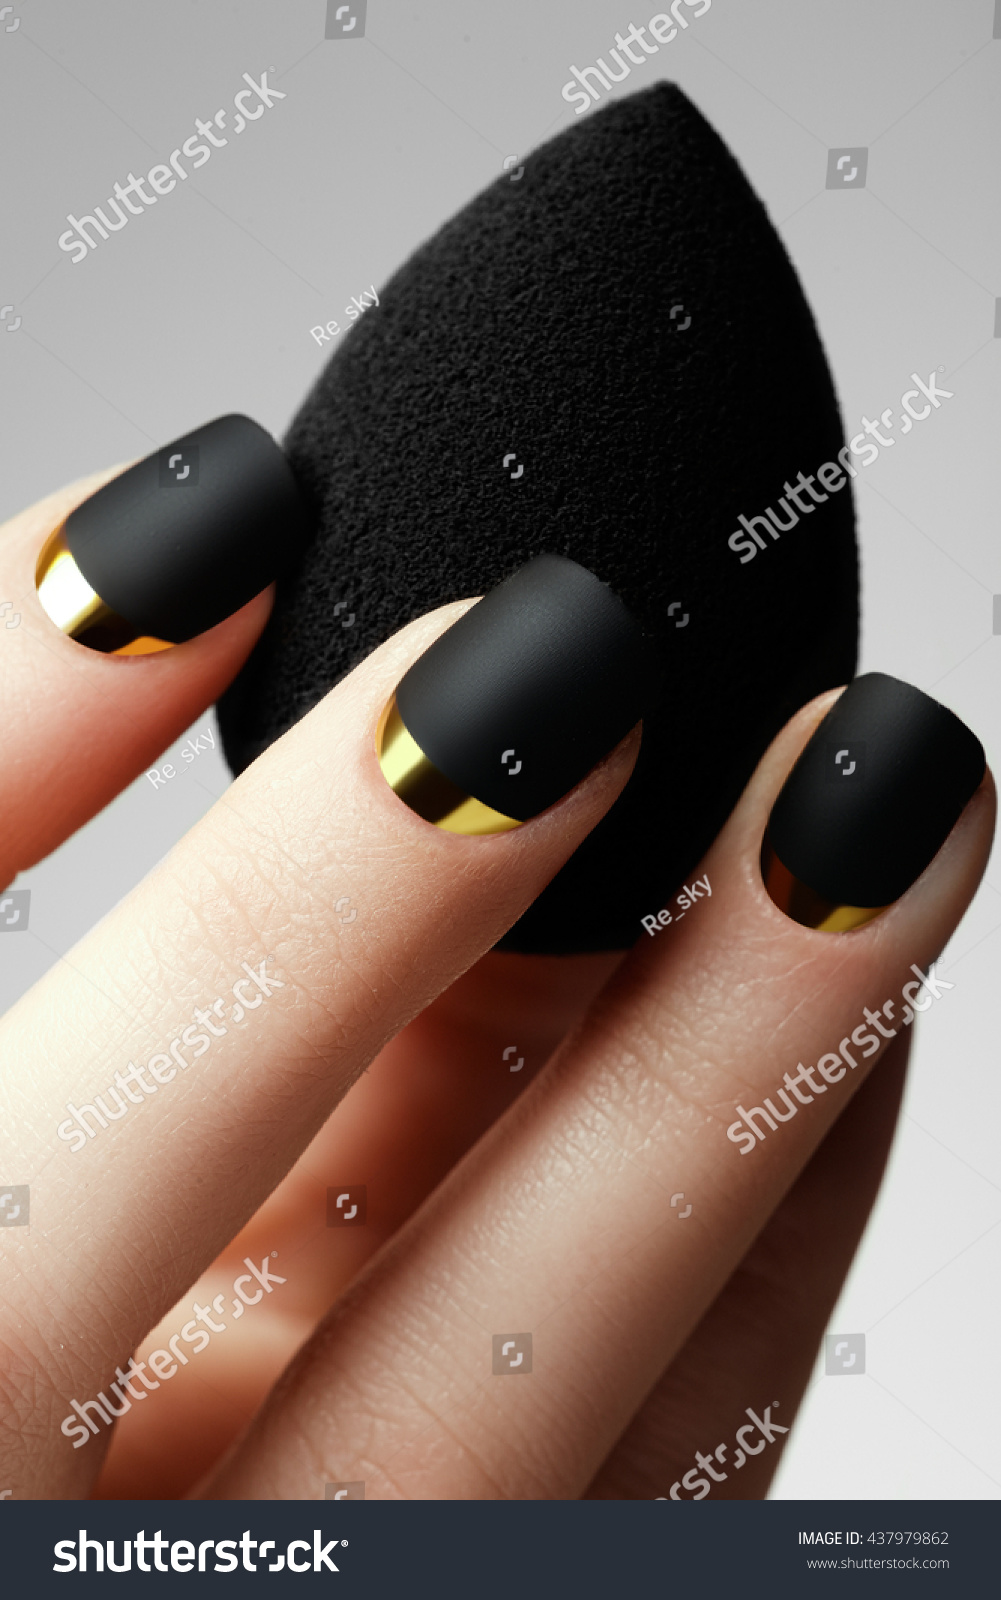 Black Matte Nail Polish Manicured Nail Stock Photo (Royalty Free ...